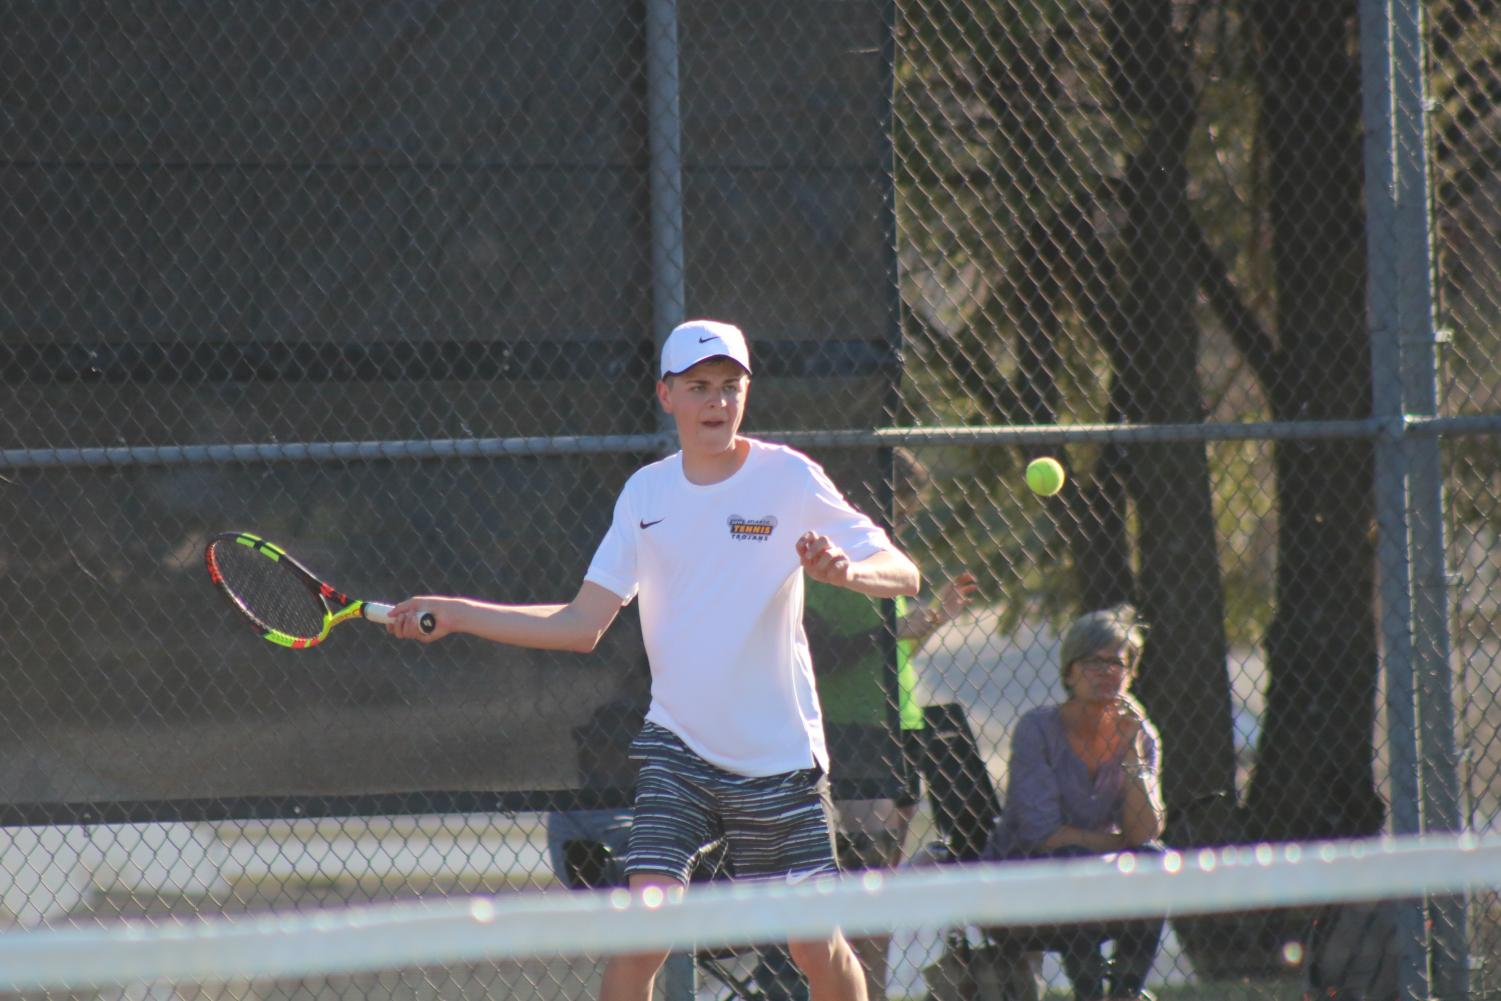 Junior Jesse Reid prepares to hit a forehand to his competitor in the #2 singles match. Reid has played tennis all three years of high school.